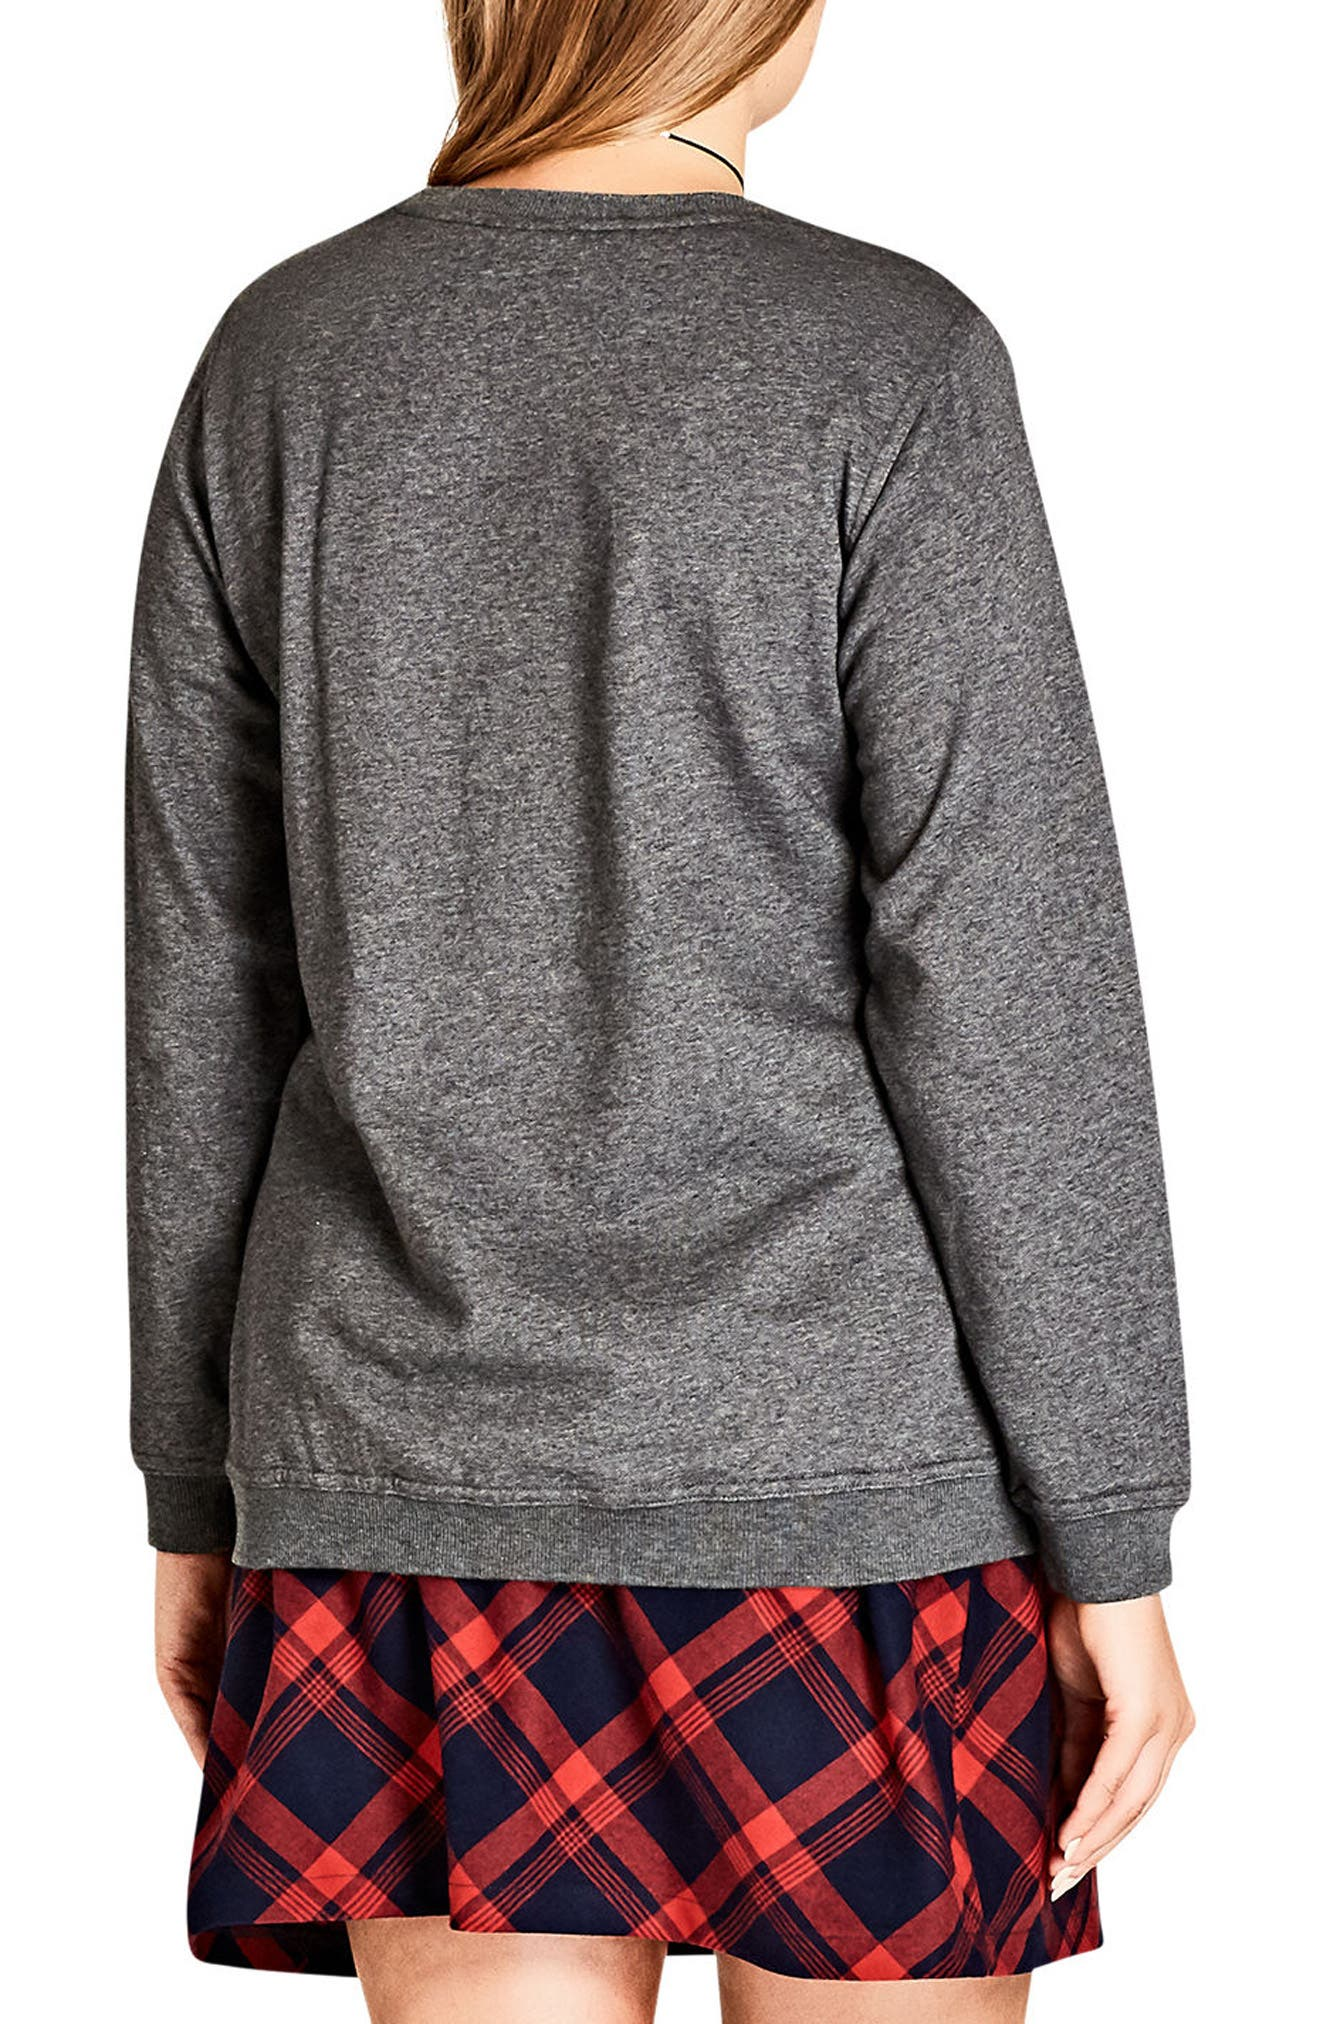 Alternate Image 2  - City Chic #OOTD Sweatshirt (Plus Size)